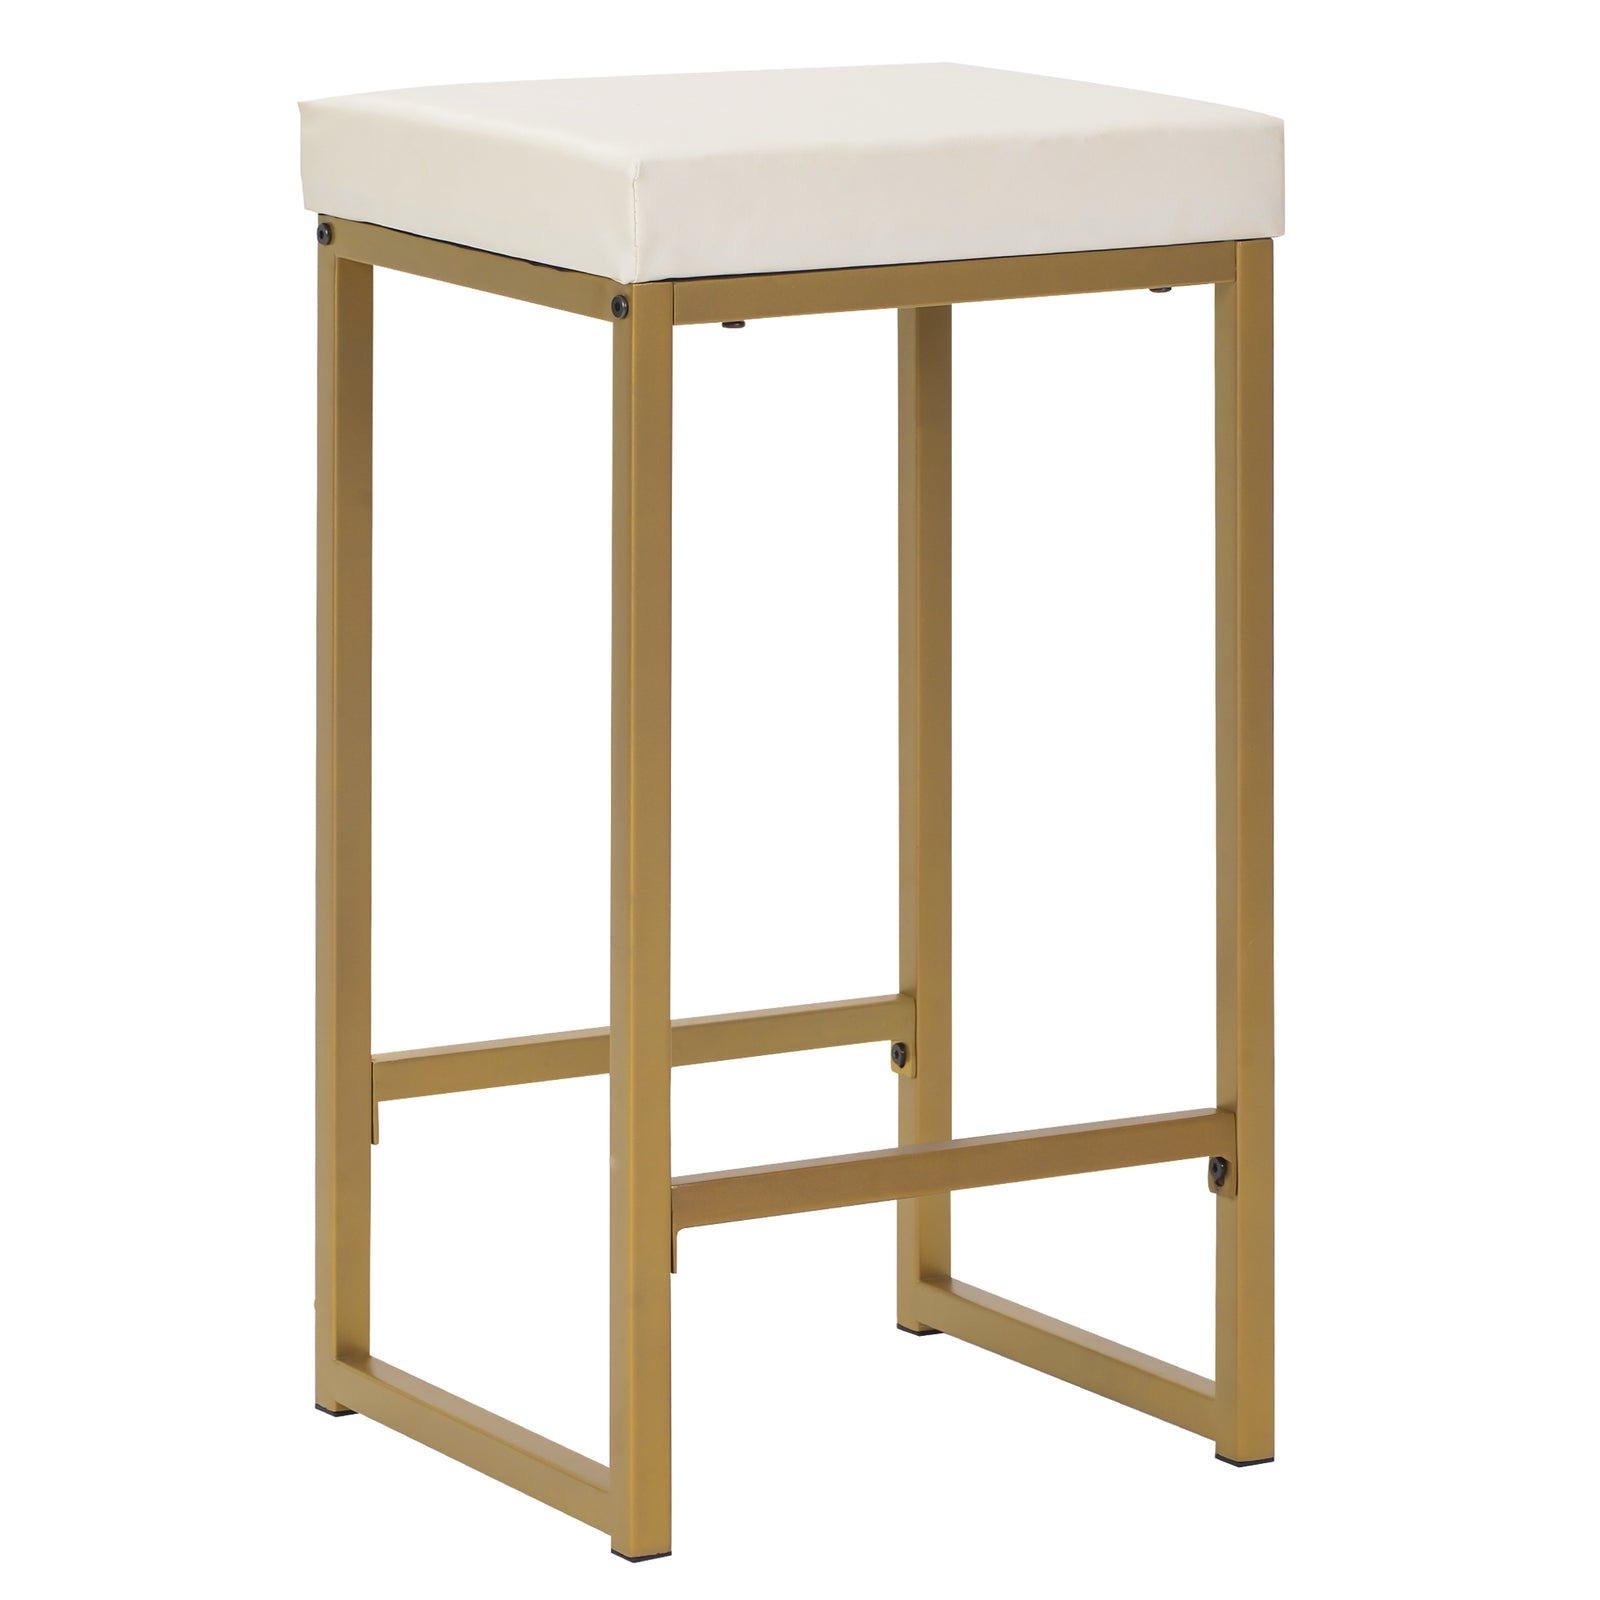 3 Counts - Modern Pub Set with Rectangular Table and Bar Stools - Gold Stool